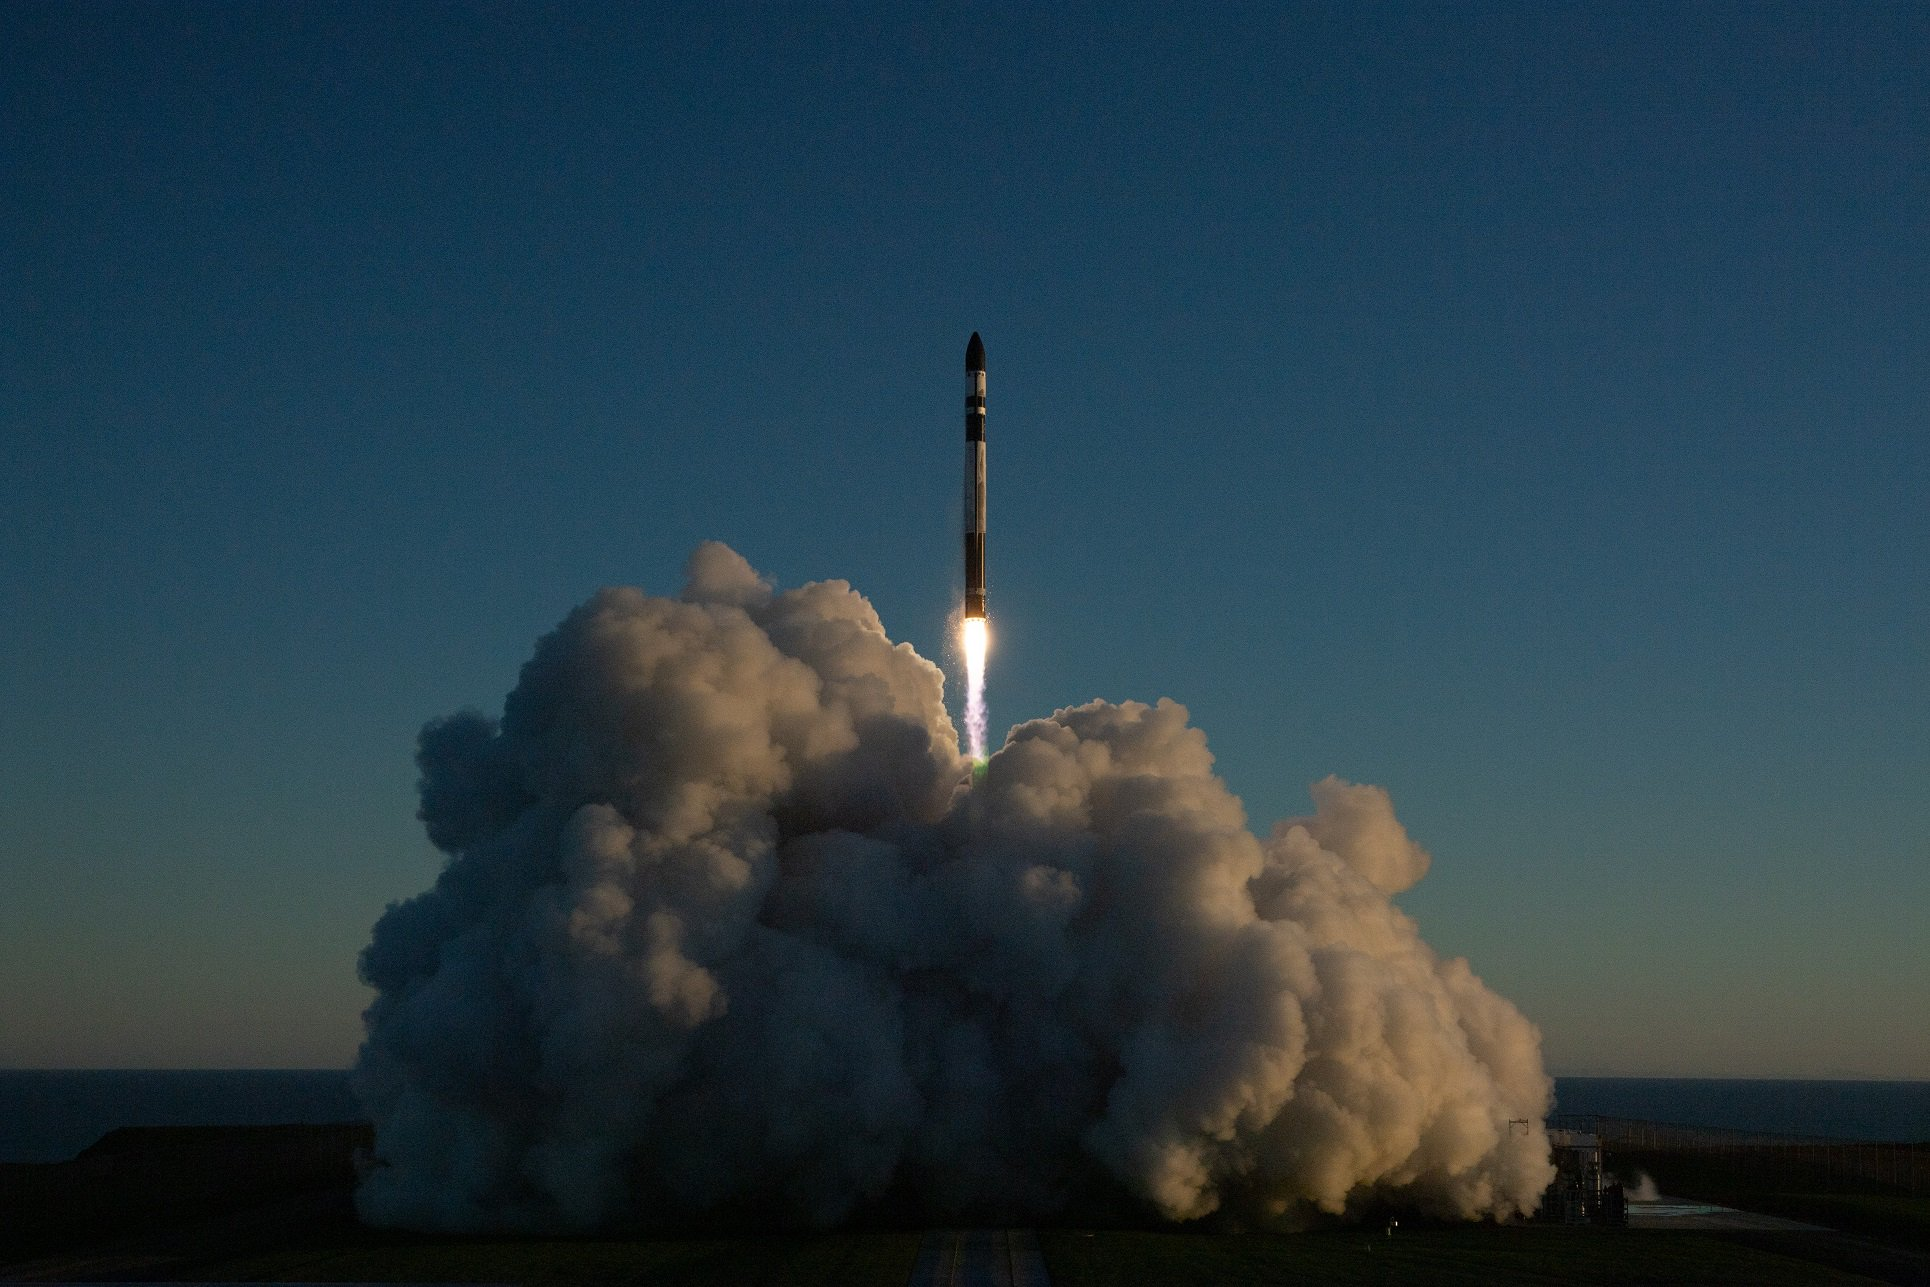 Rocket Lab is going to catch their missiles with a helicopter. How do you like Elon Musk?